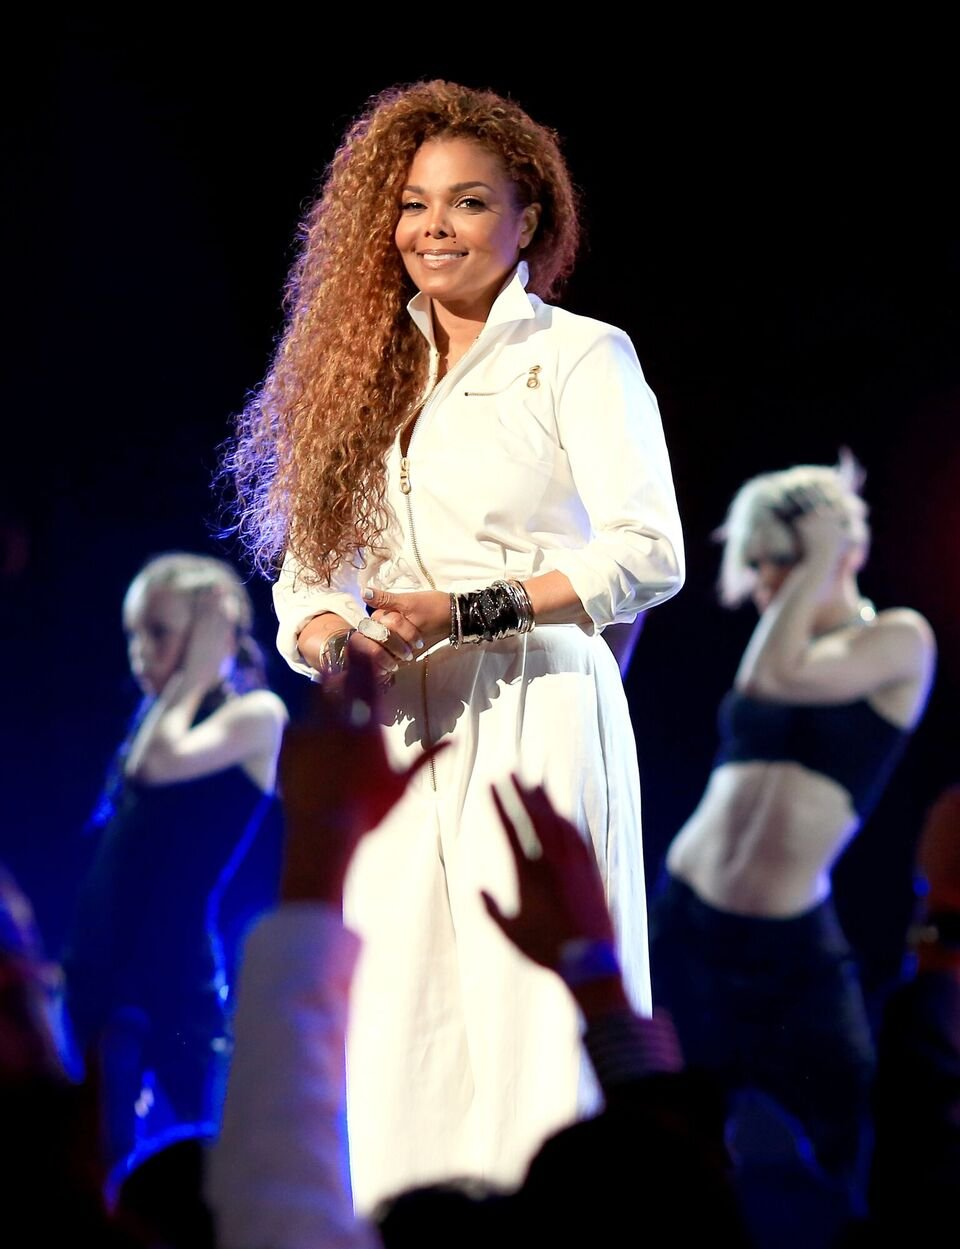 Janet Jackson at the BET Awards. | Source: Getty Images